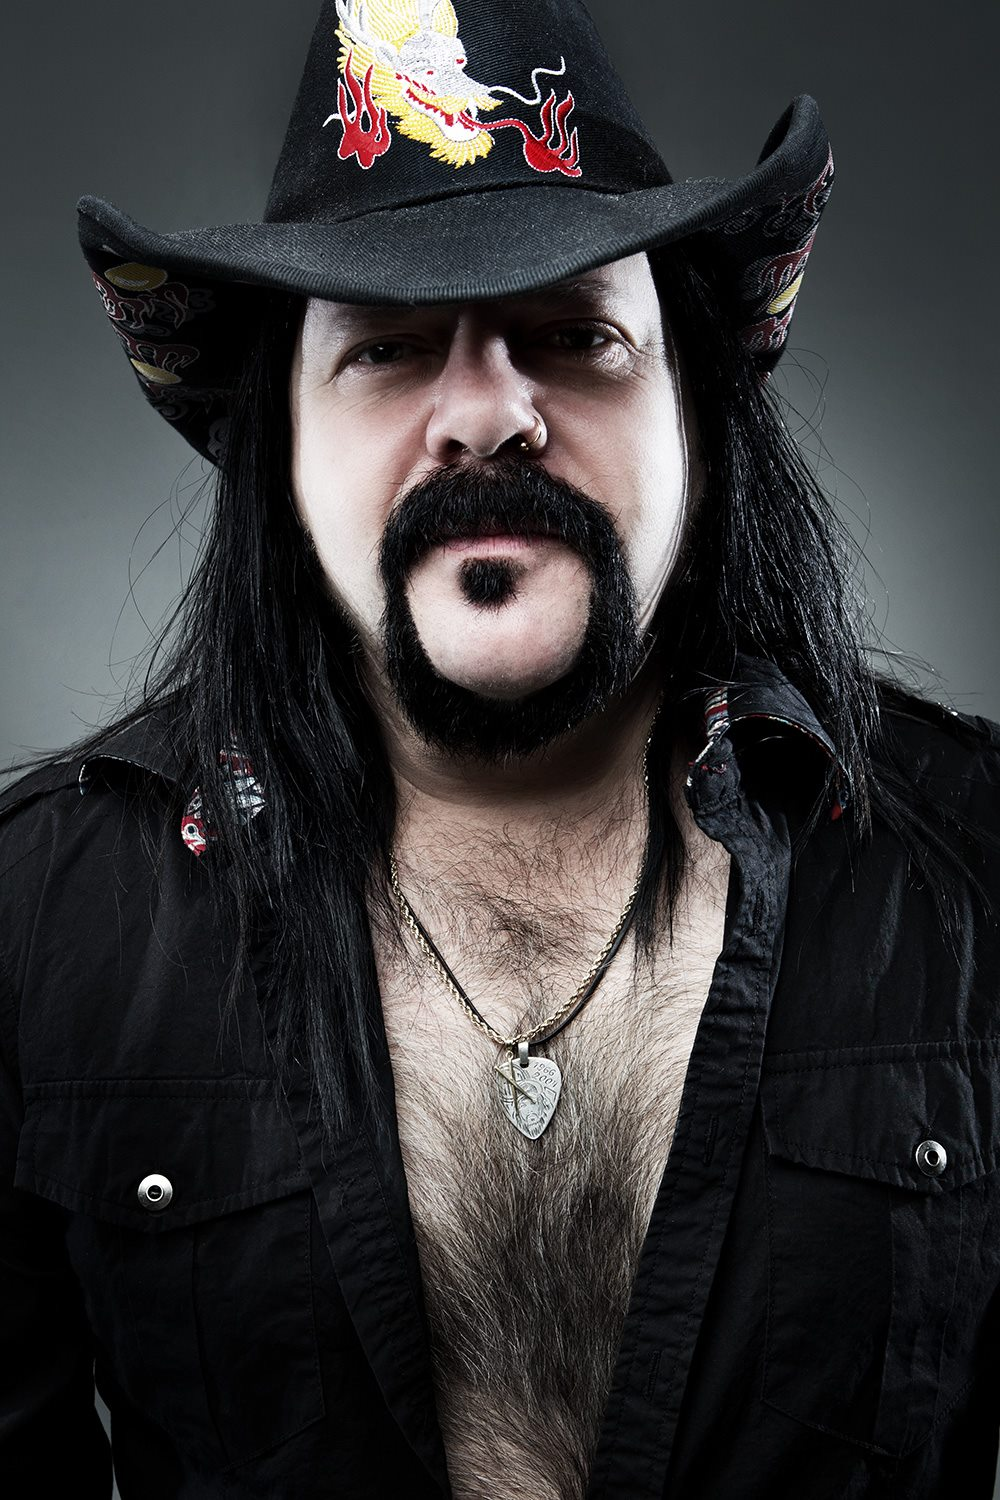 Vincent Paul Abbott aka Vinnie Paul